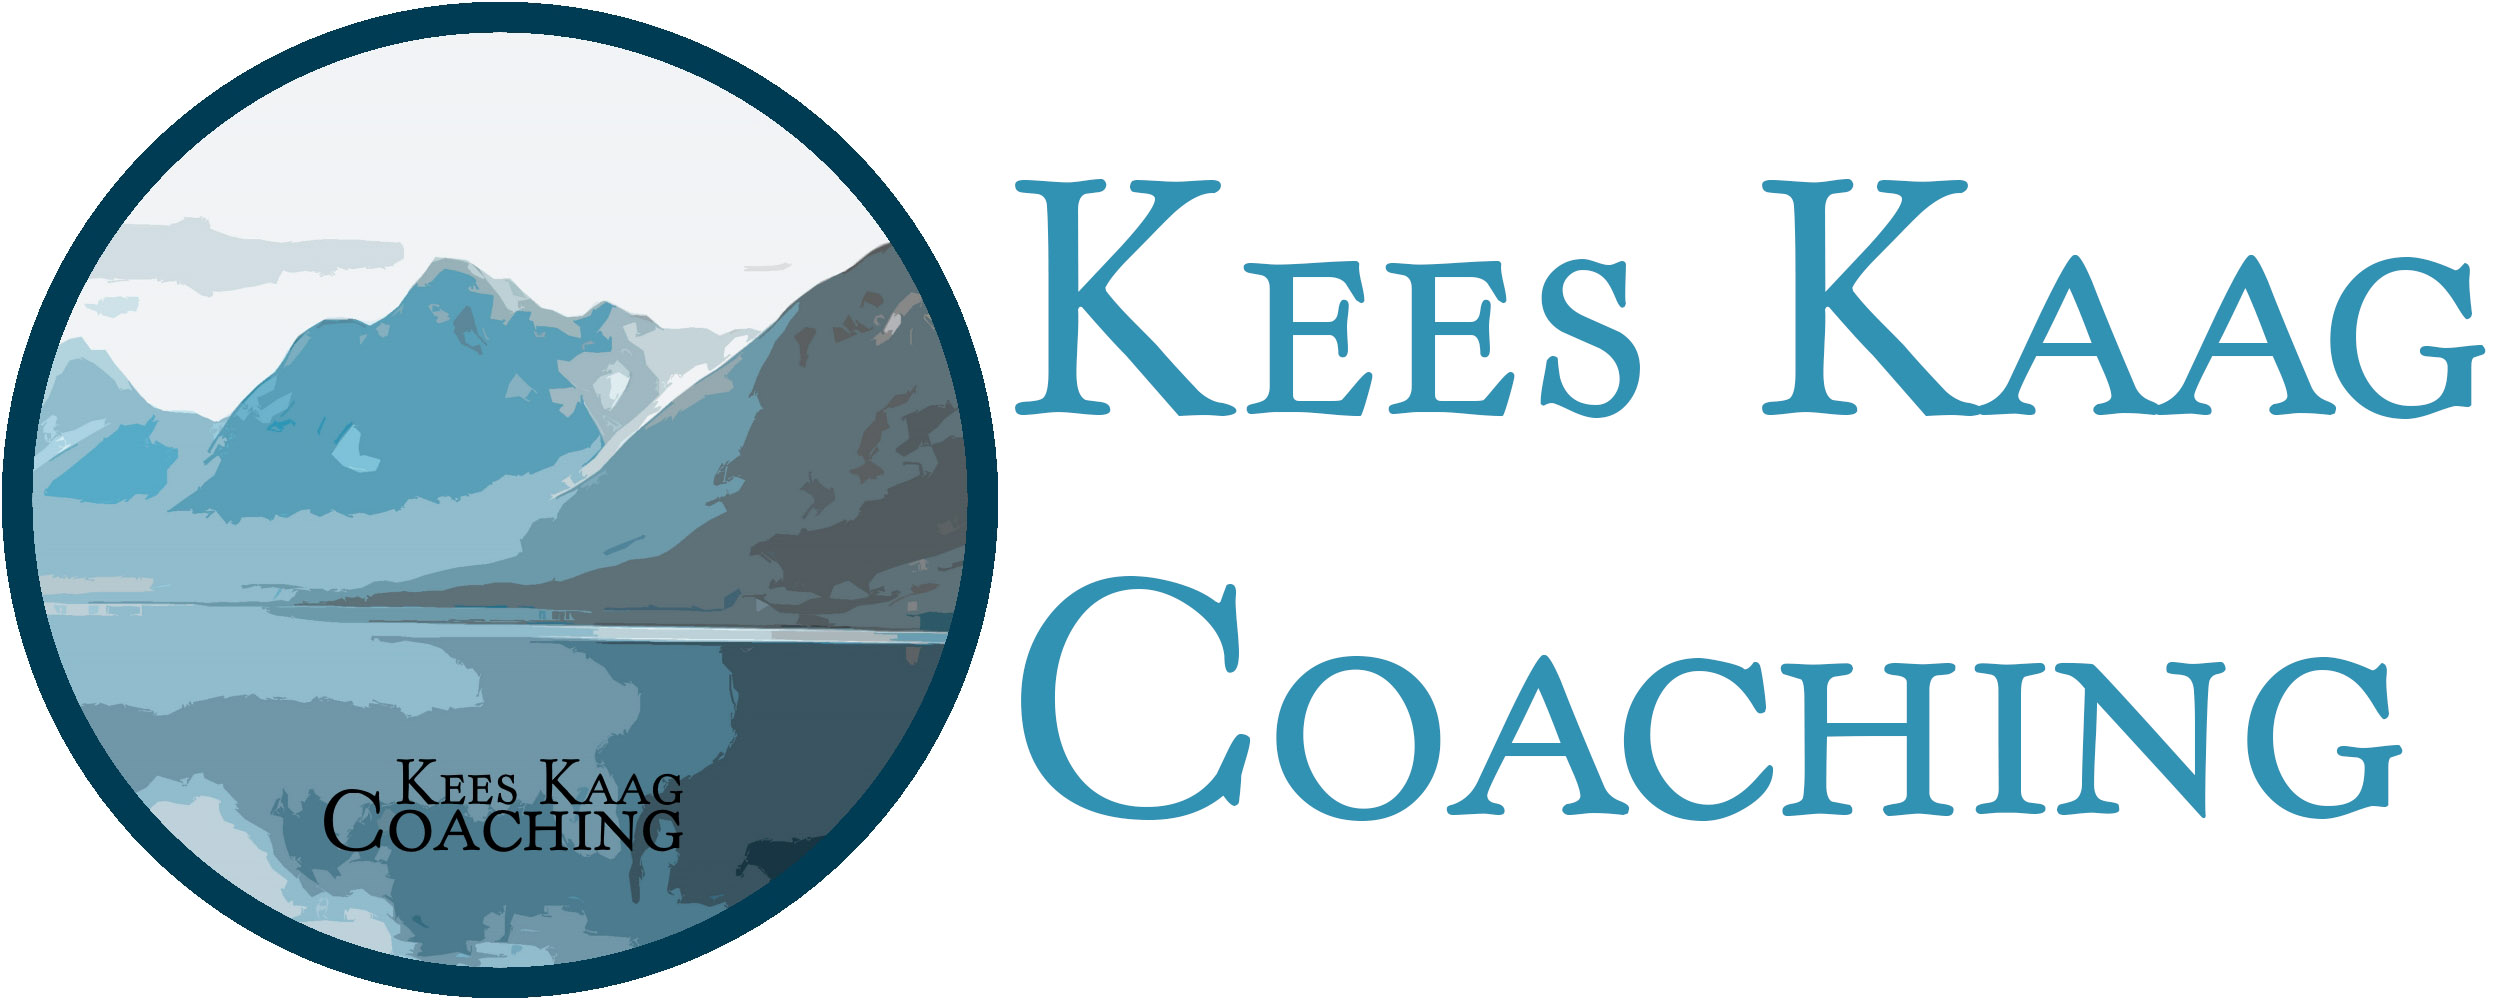 Kees Kaag Coaching